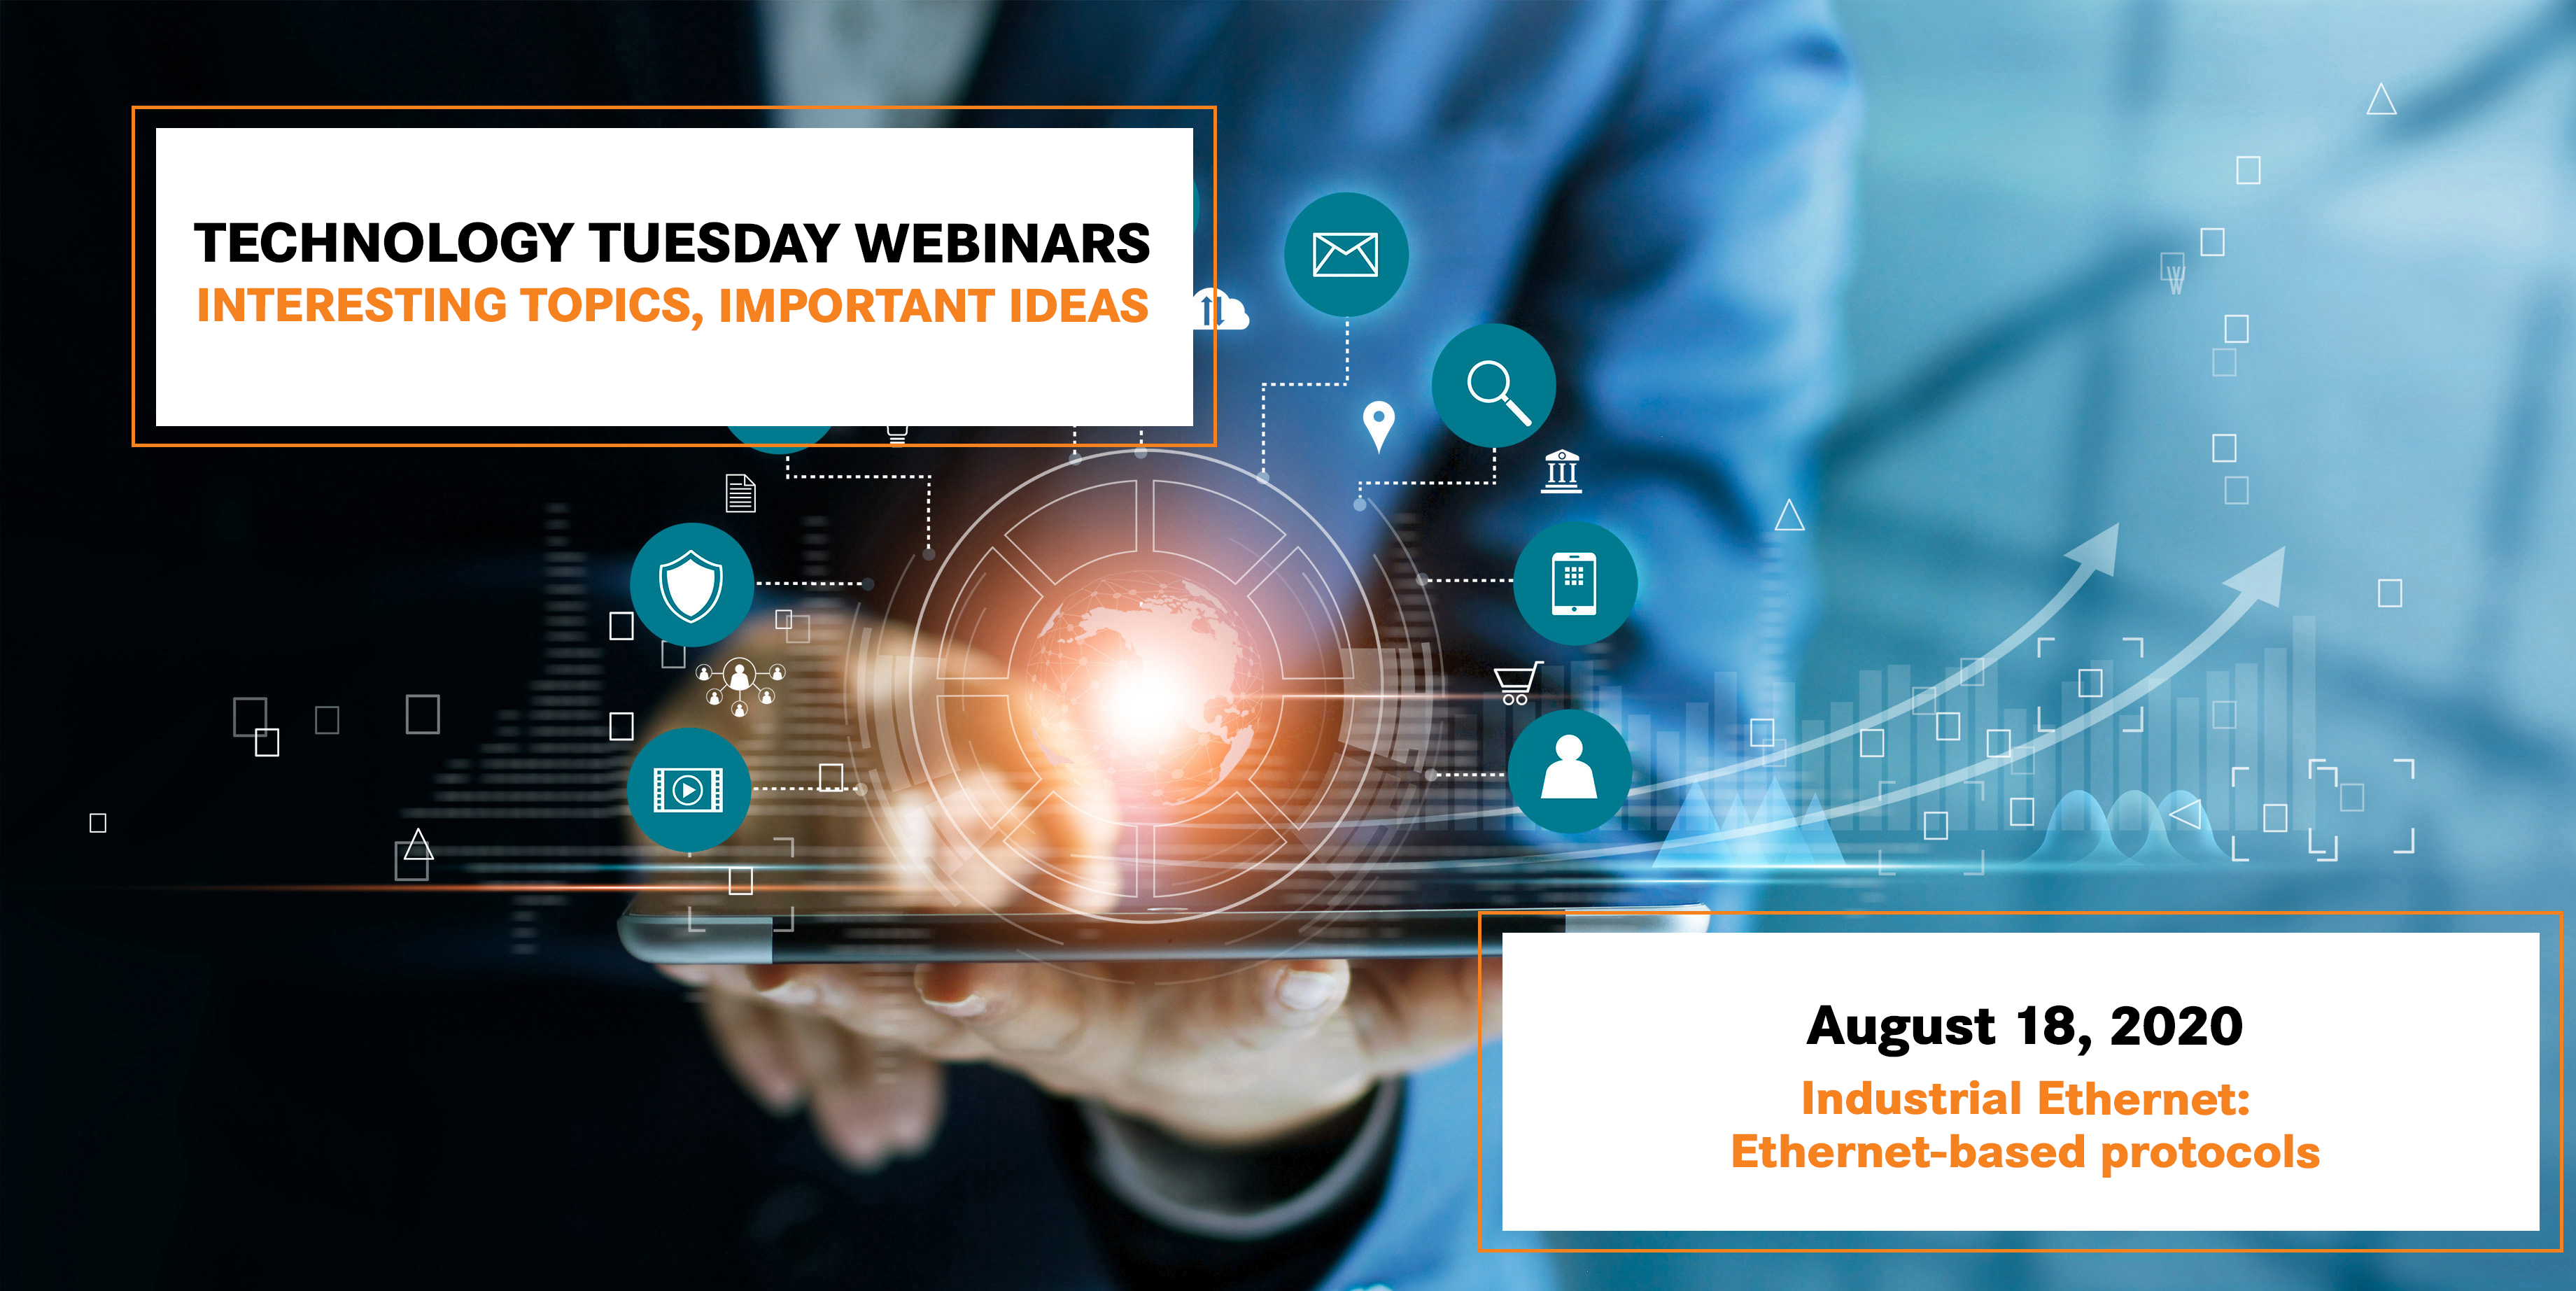 Tech Tuesday USA Industrial Ethernet August 2020